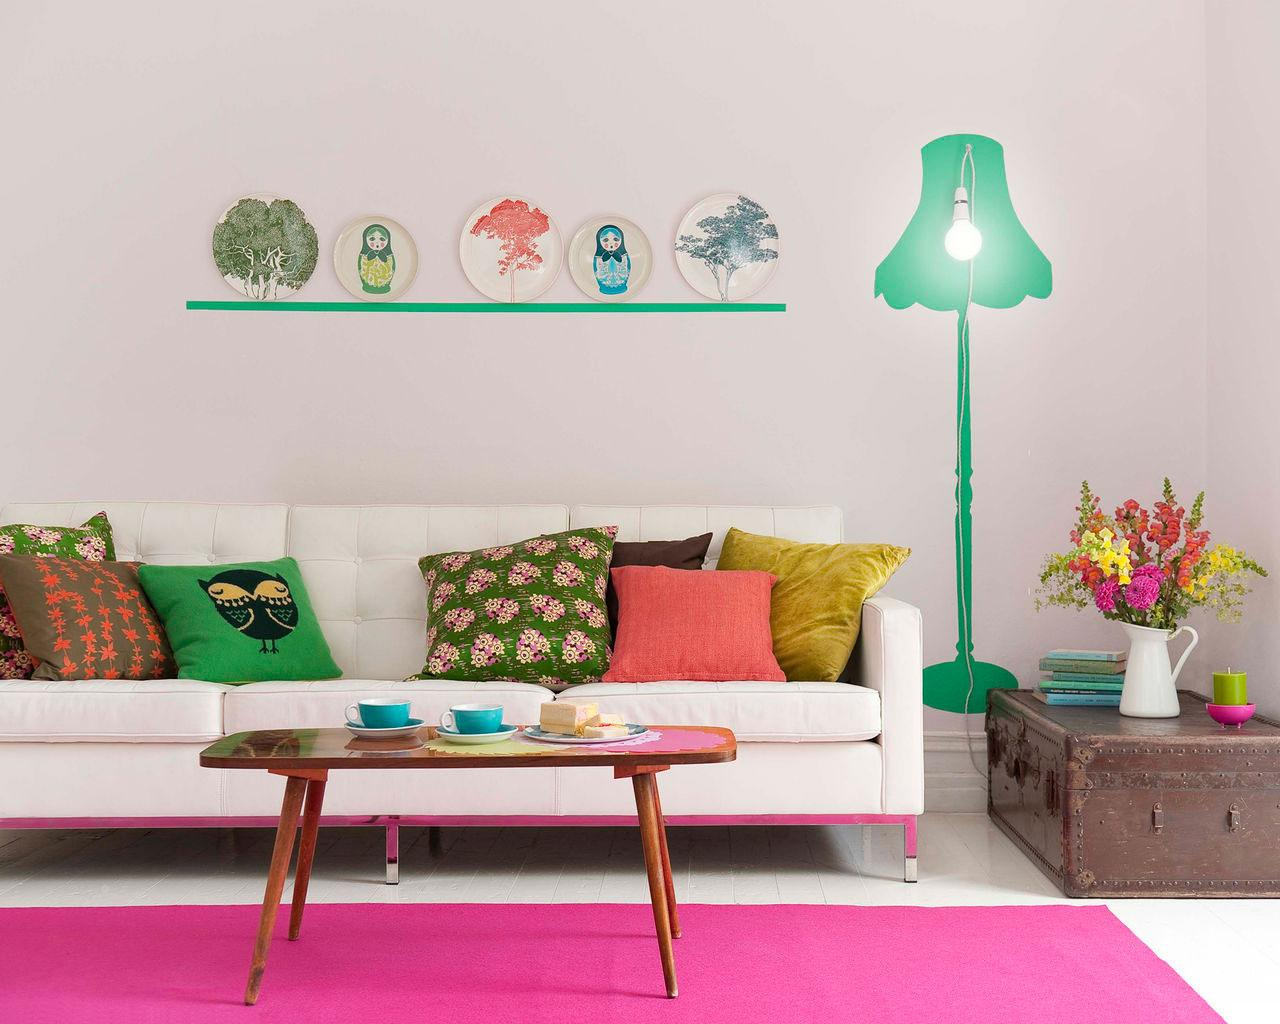 10 id es originales pour peindre son int rieur blog d co for Idee deco murale originale